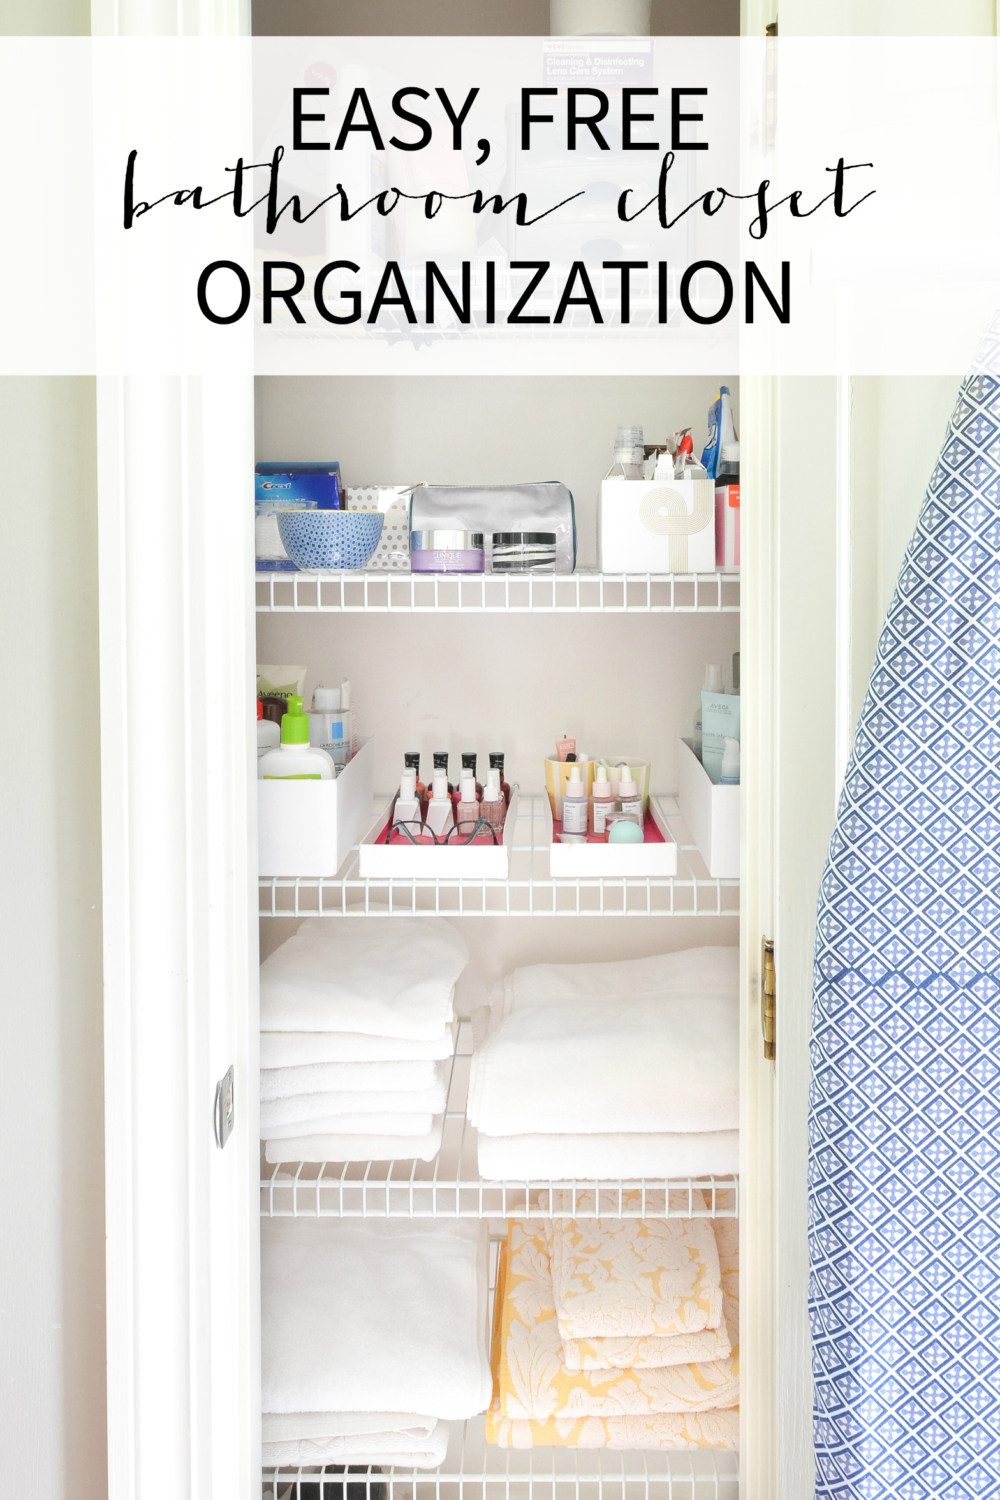 Tips for linen closet organization and bathroom organization, including a FREE way to keep all your toiletries neat and organized!